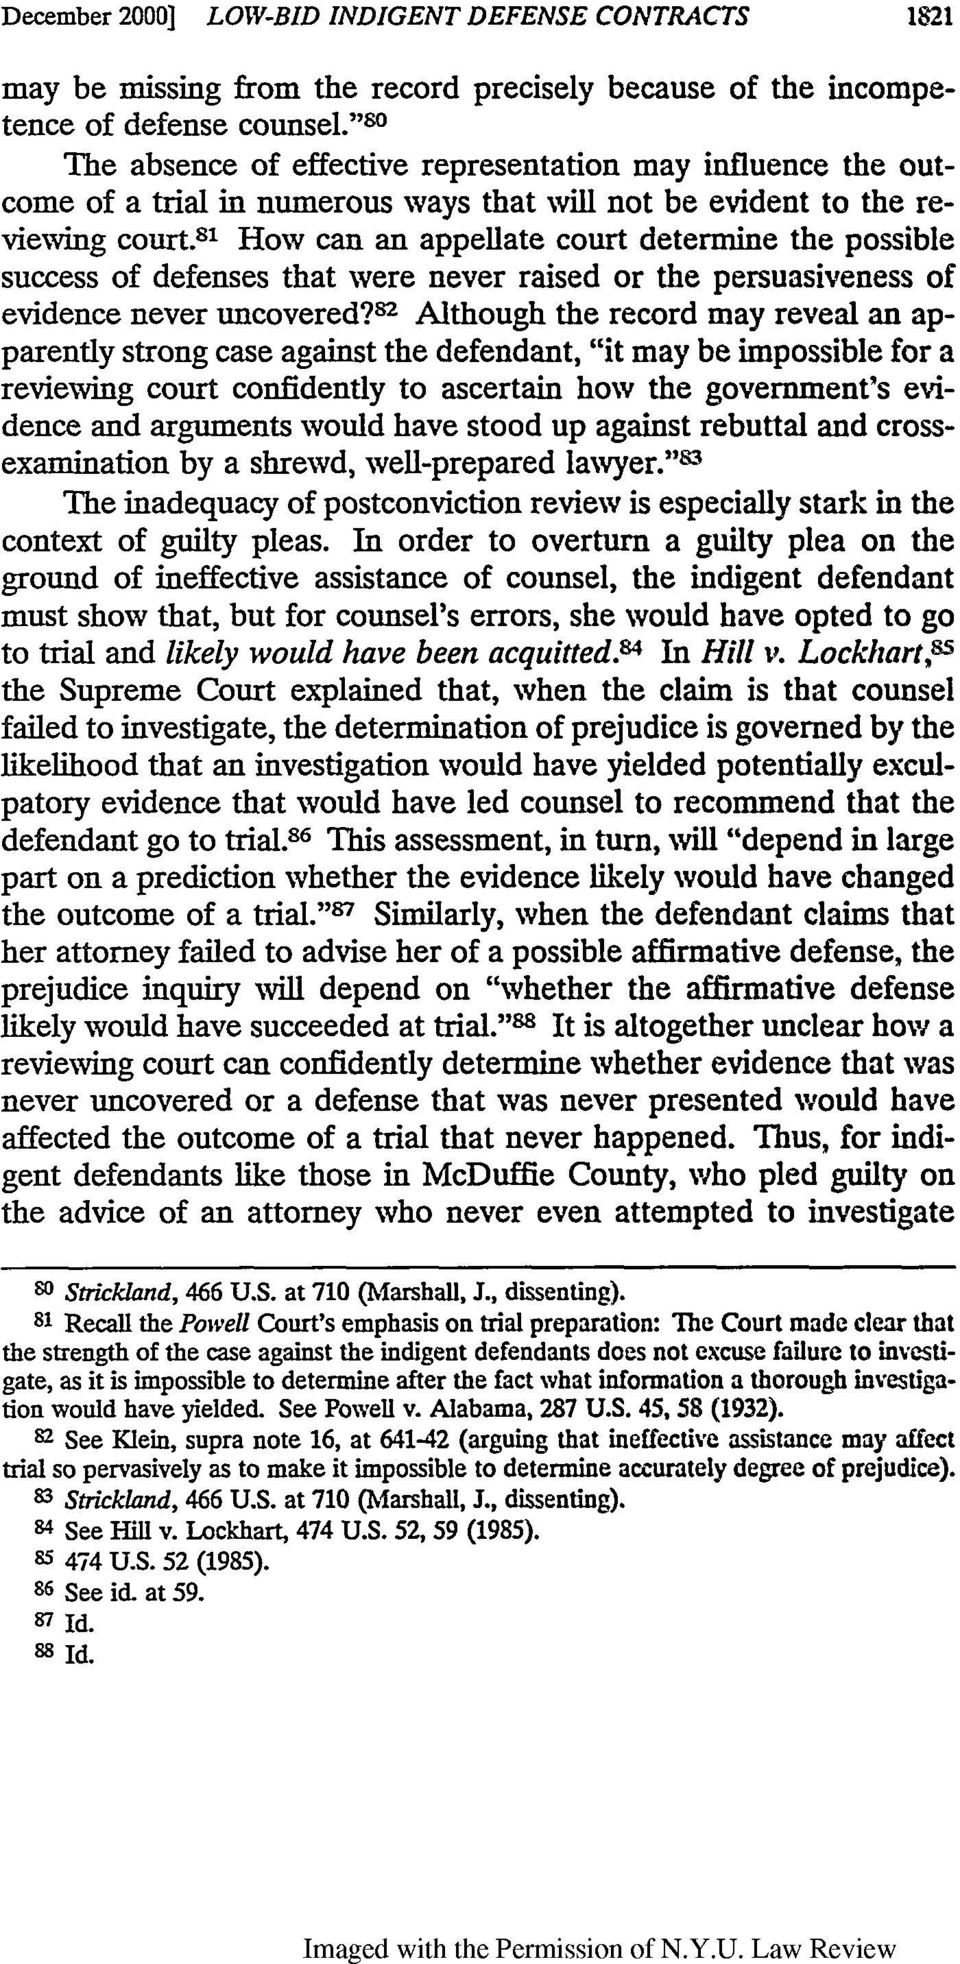 81 How can an appellate court determine the possible success of defenses that were never raised or the persuasiveness of evidence never uncovered?